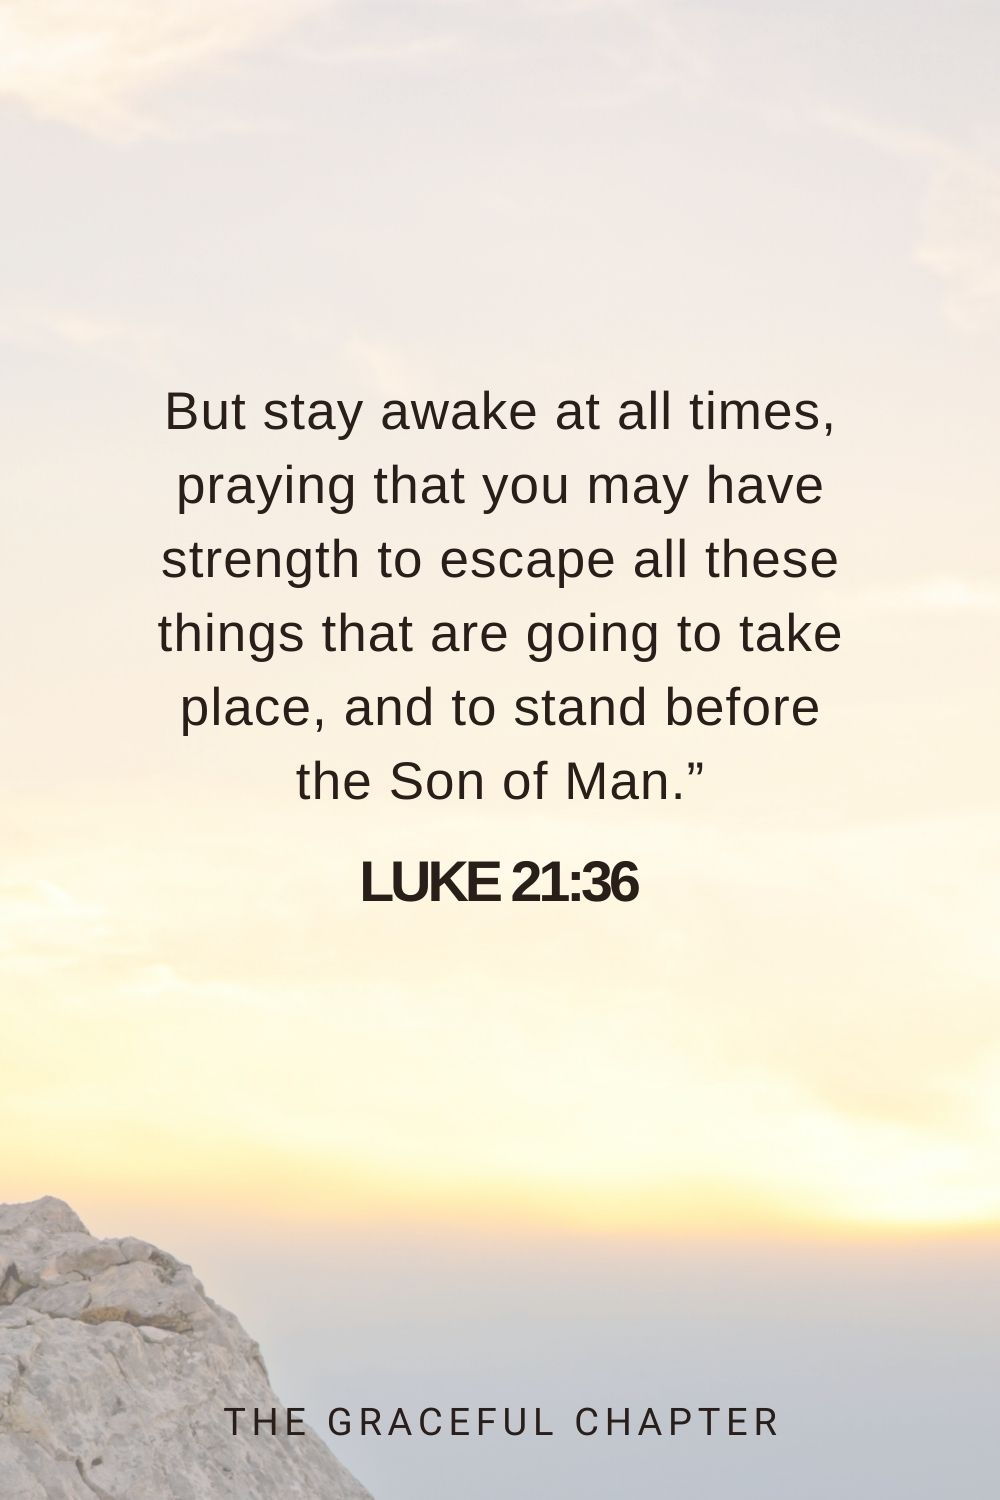 """But stay awake at all times, praying that you may have strength to escape all these things that are going to take place, and to stand before the Son of Man."""" Luke 21:36"""